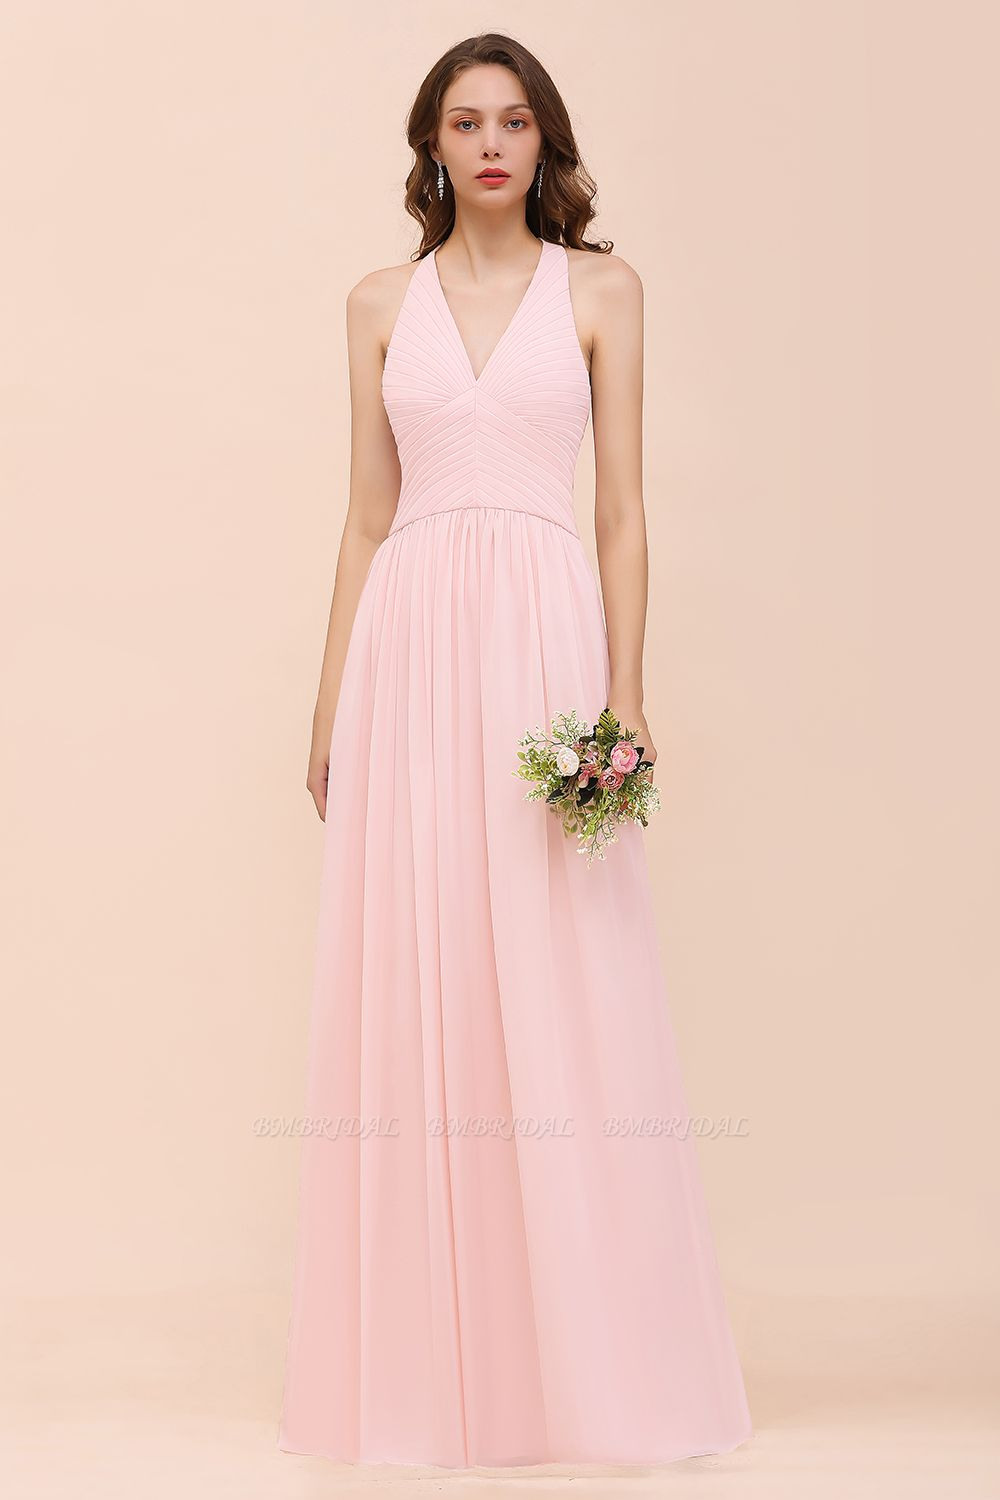 Chic V-Neck Blushing Pink Chiffon Affordable Bridesmaid Dress with Ruffle